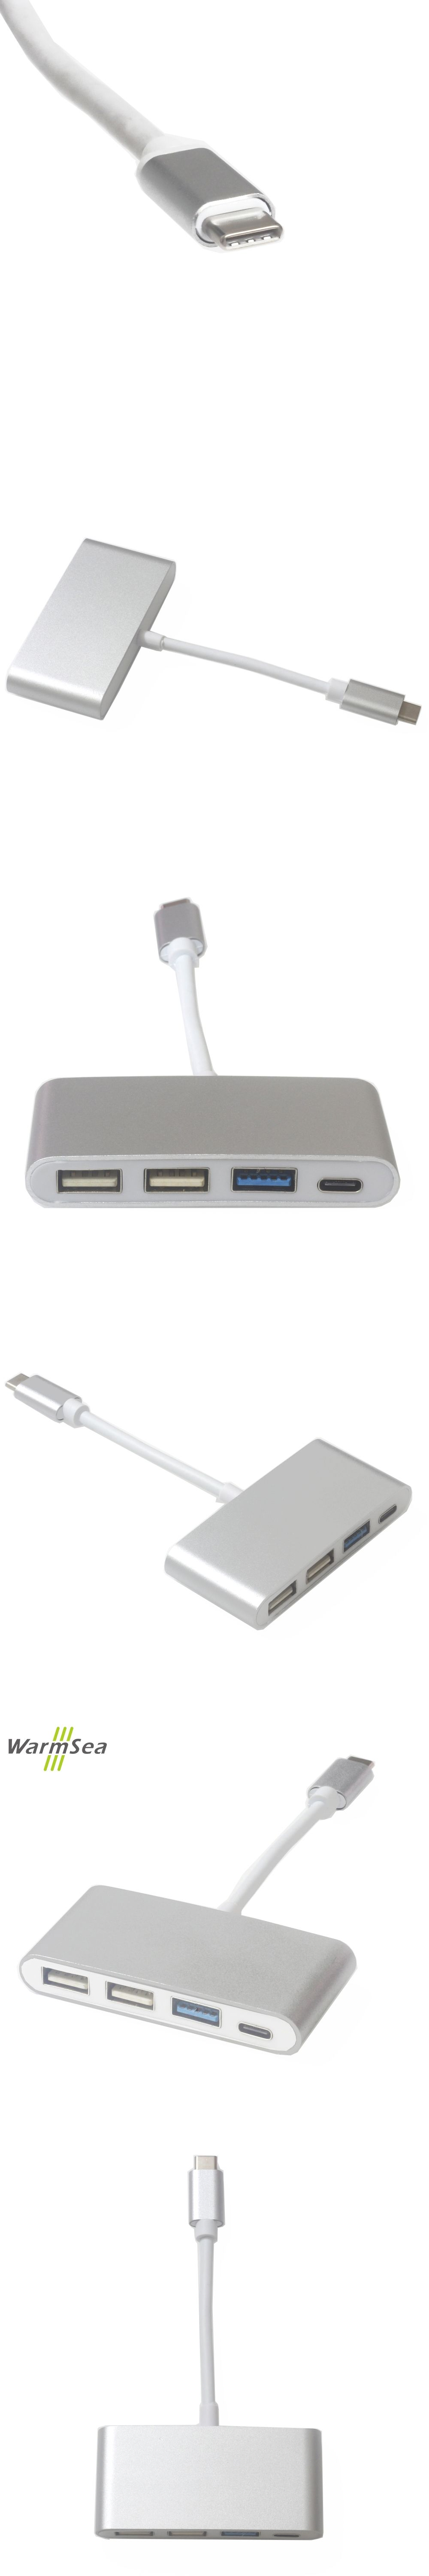 USB C HUB Thunderbolt 3 Dock Type C Dongle to 3 USB 3 0 with USB C